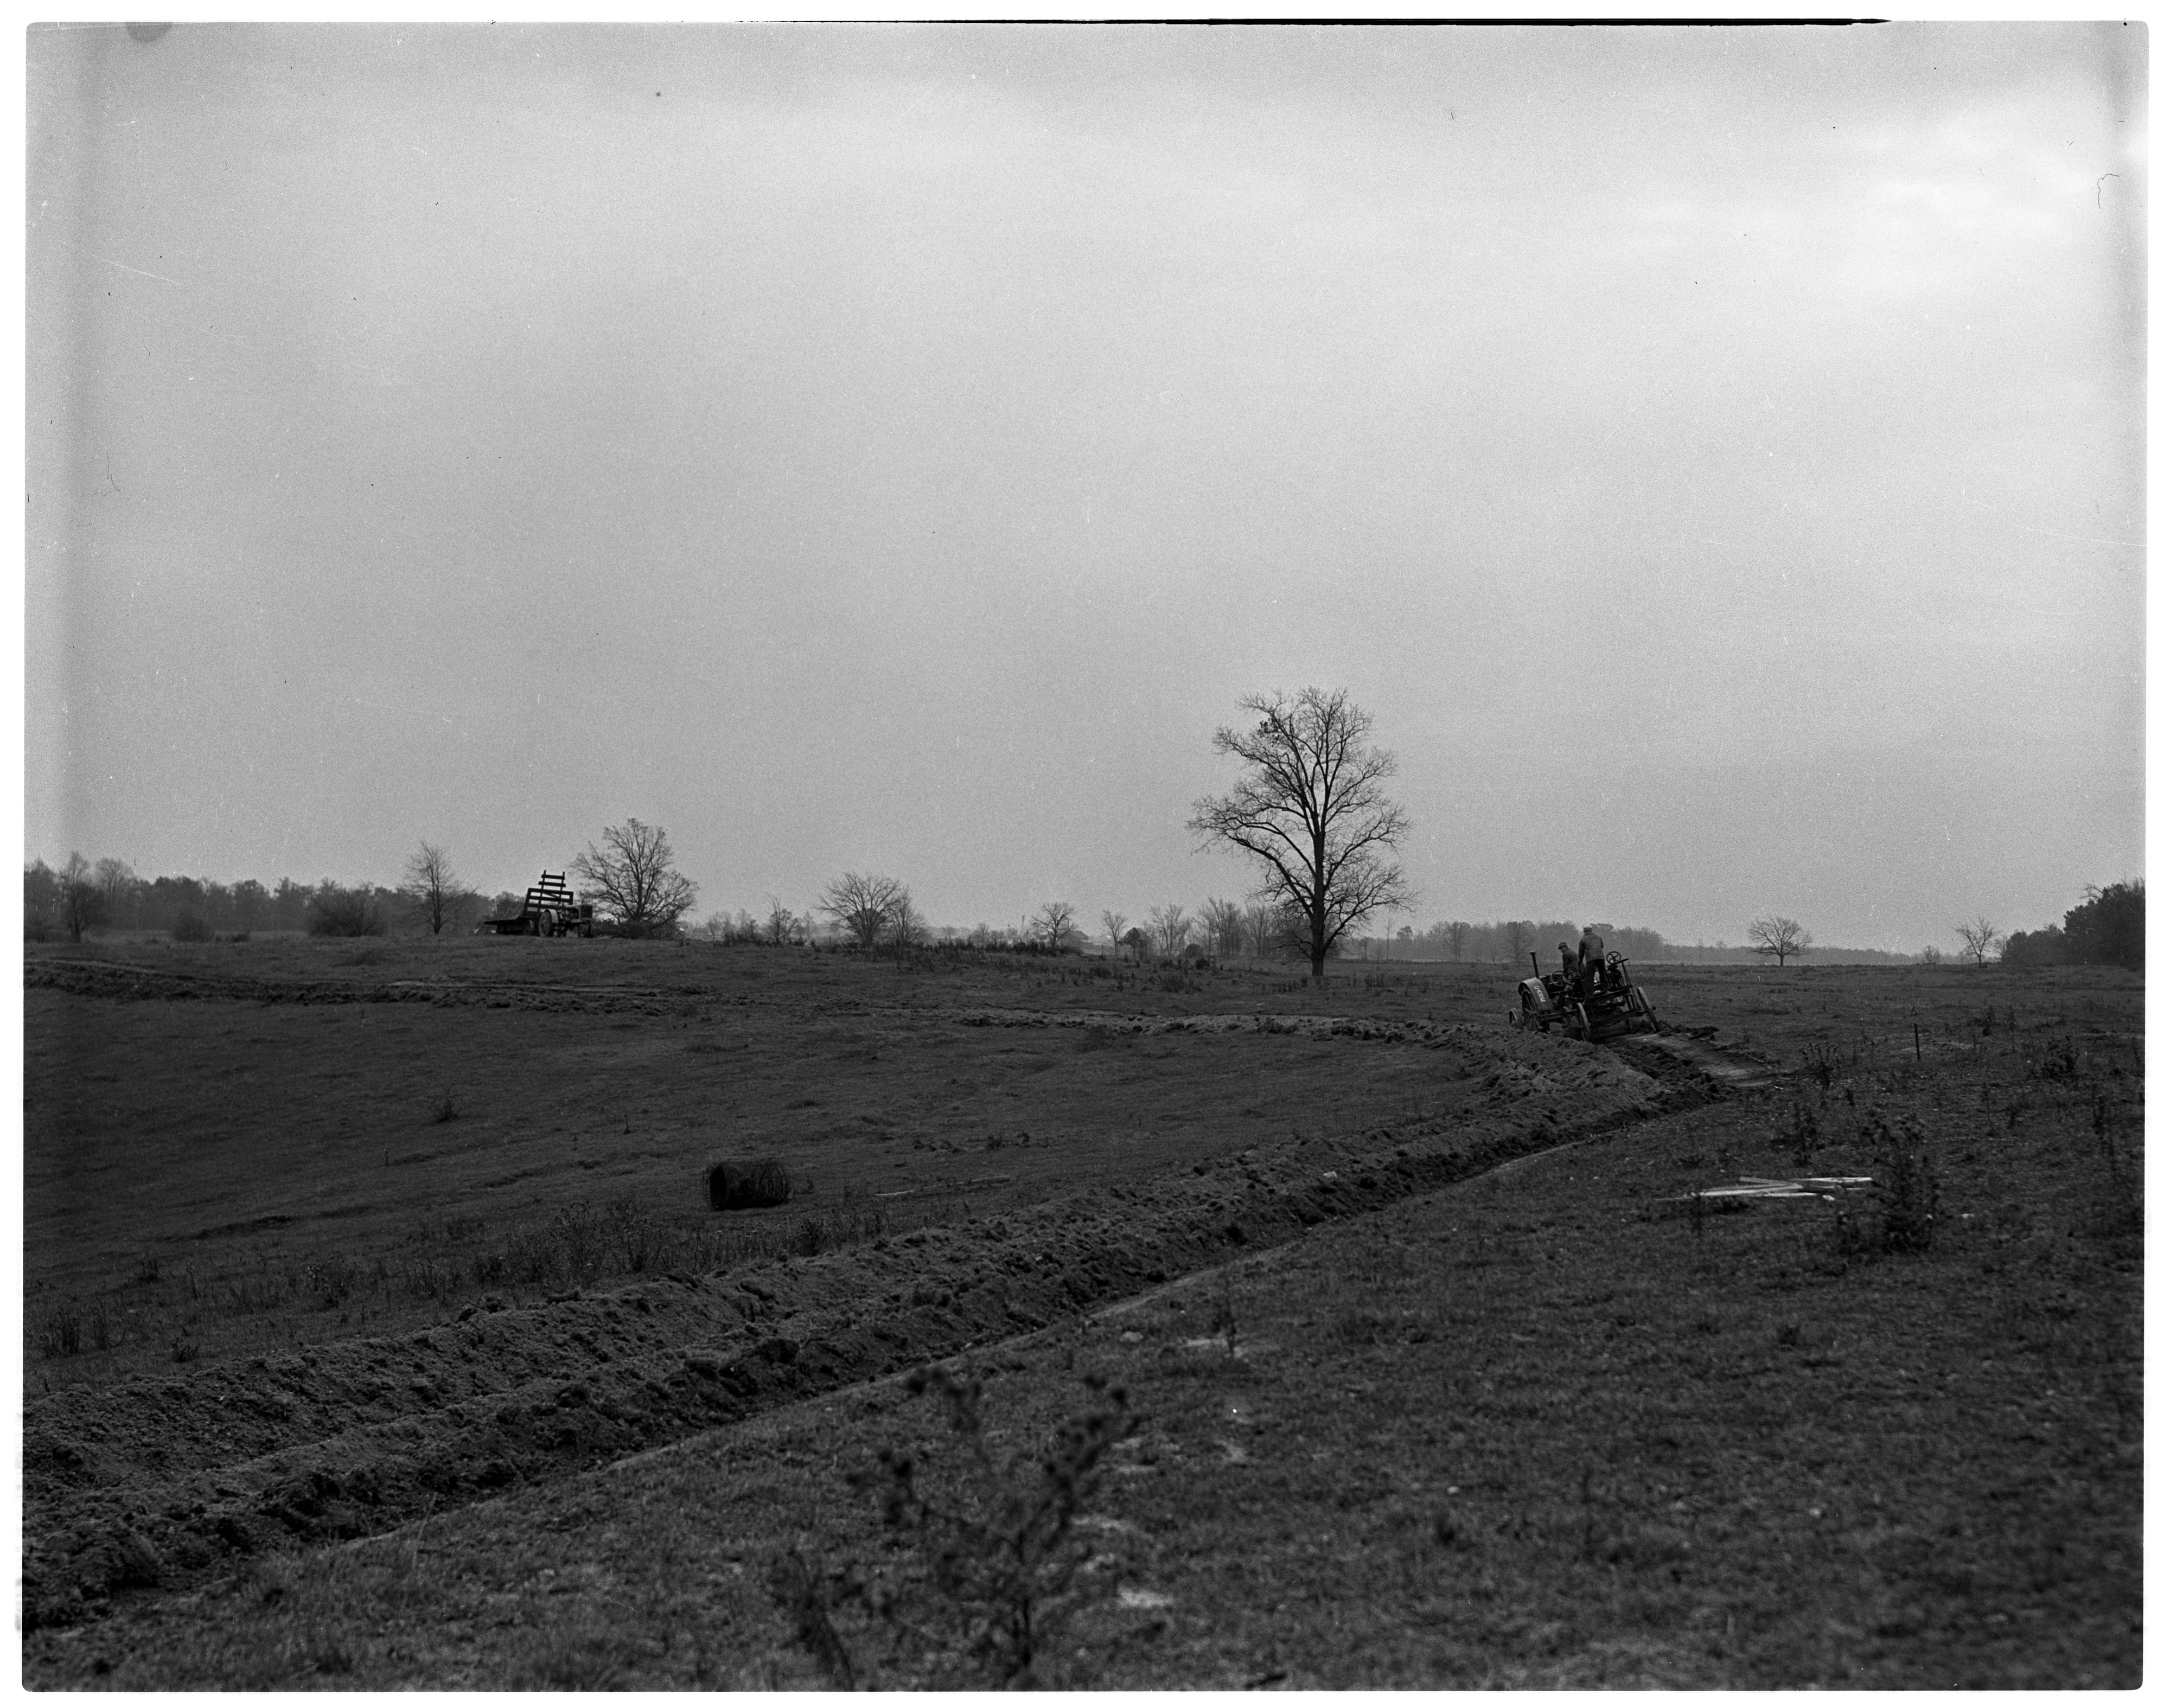 Terracing at Vreeland Farm on Cherry Hill Rd image